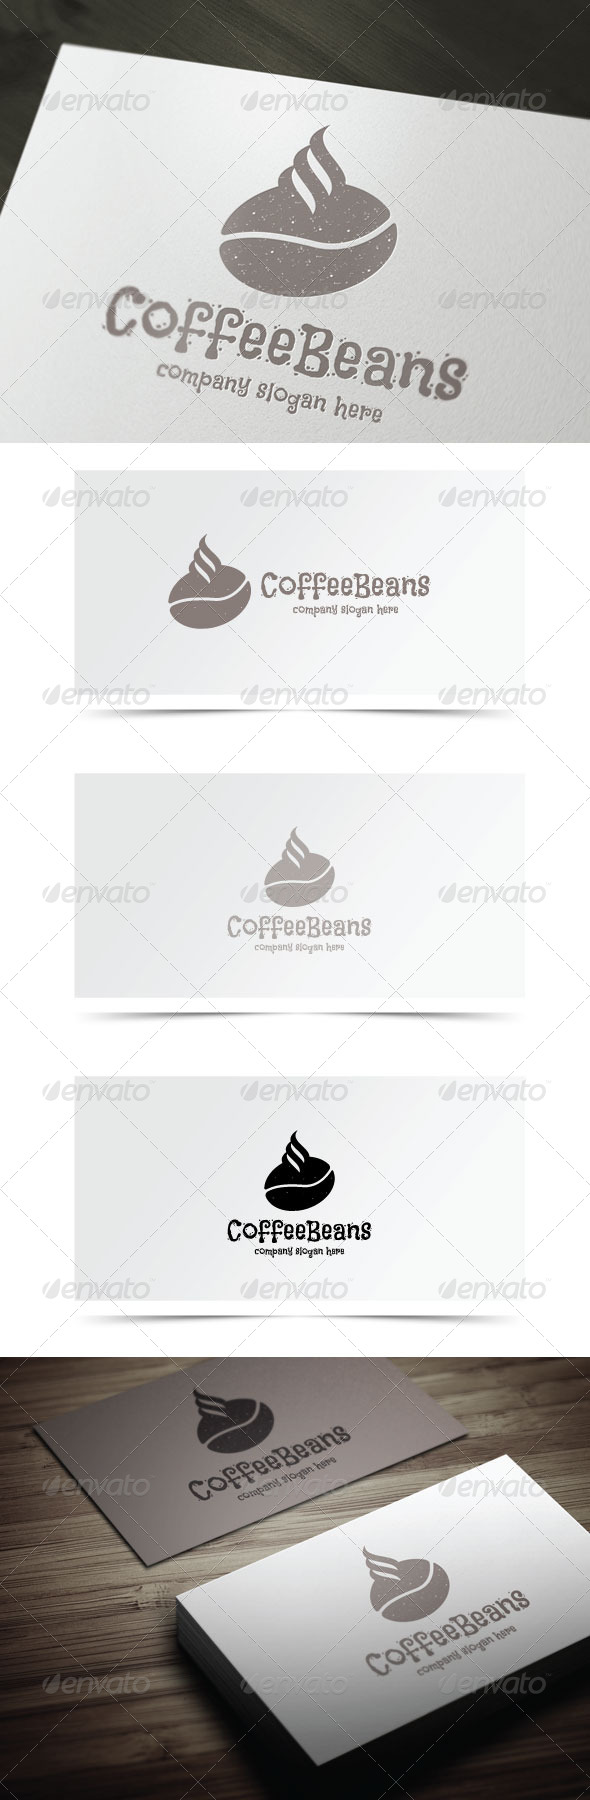 GraphicRiver Coffee Beans 8103009